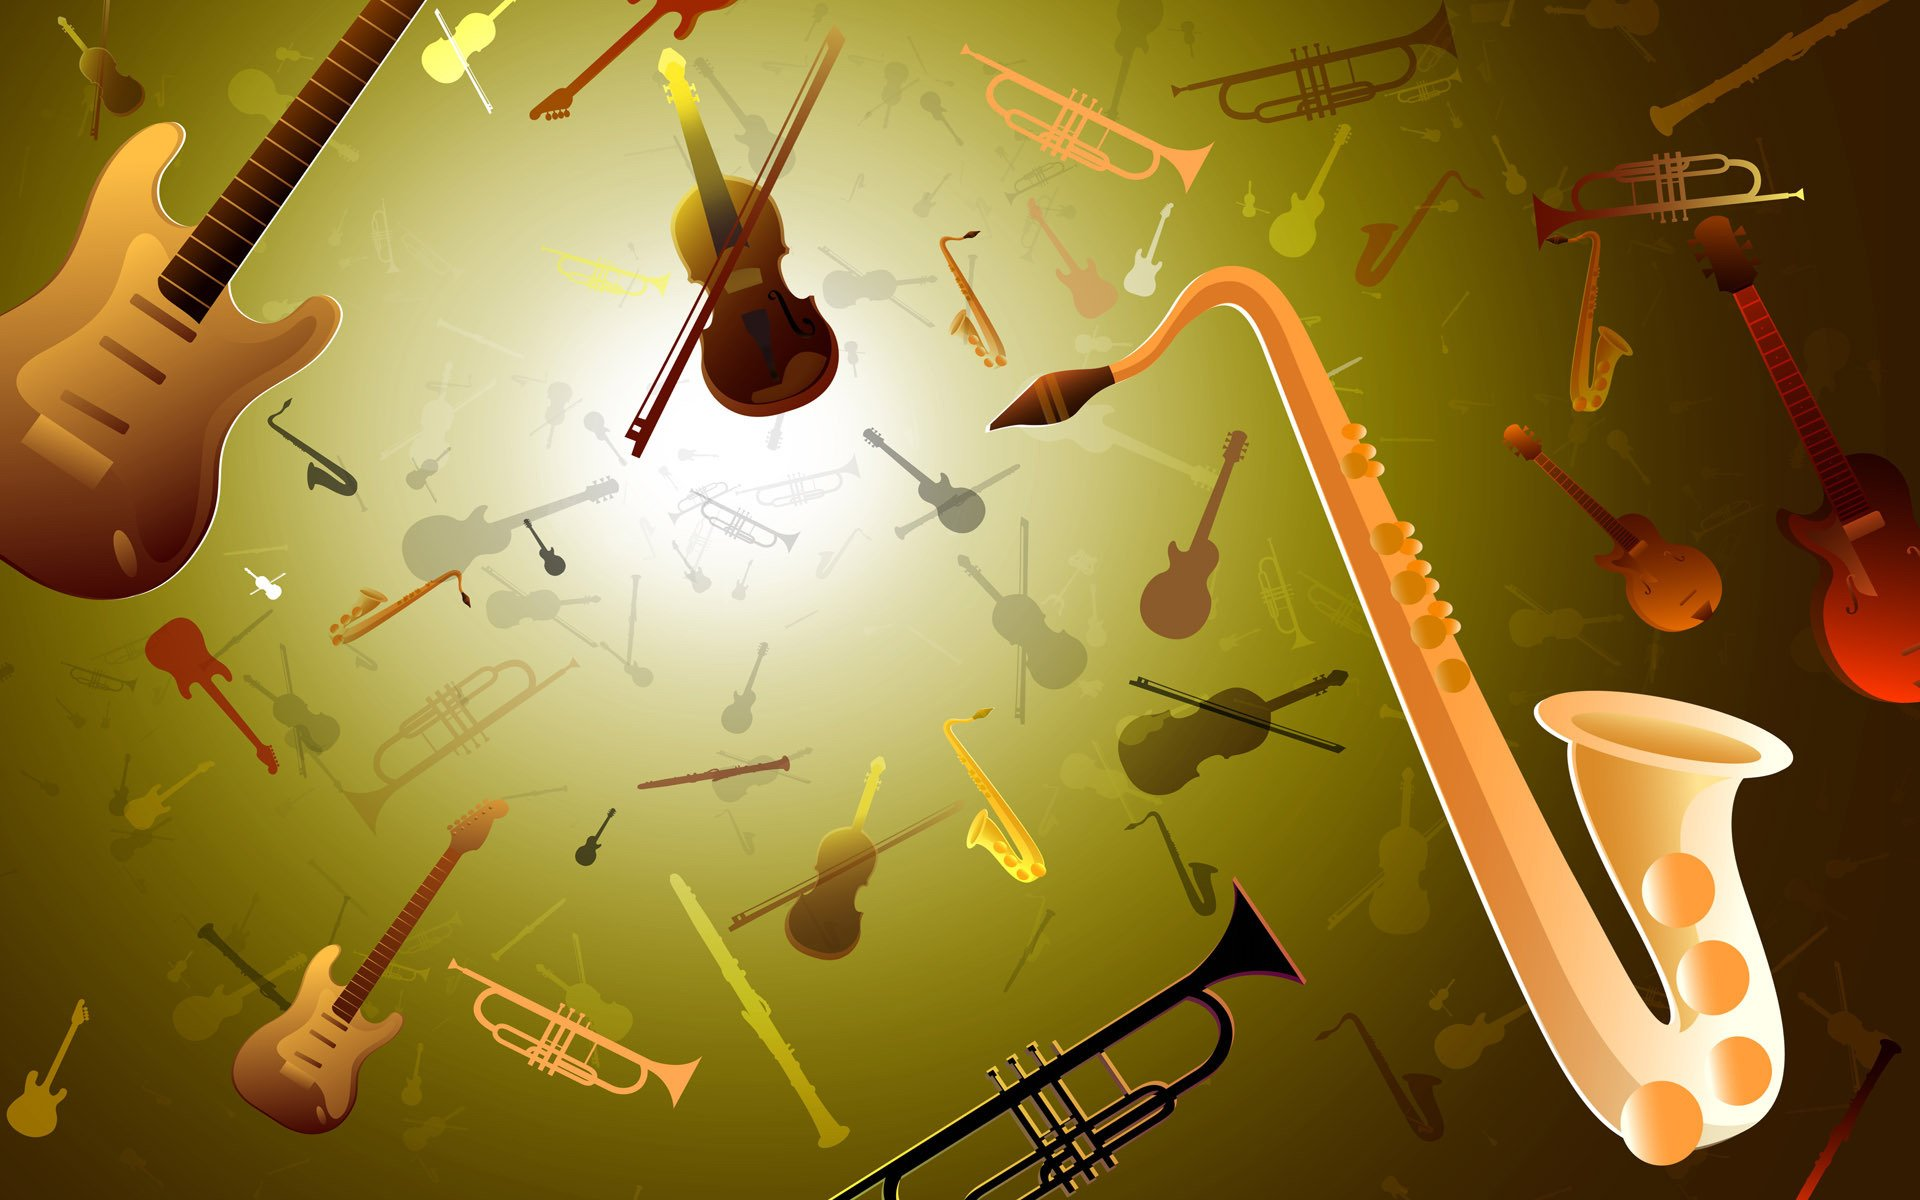 Instrument Wallpaper